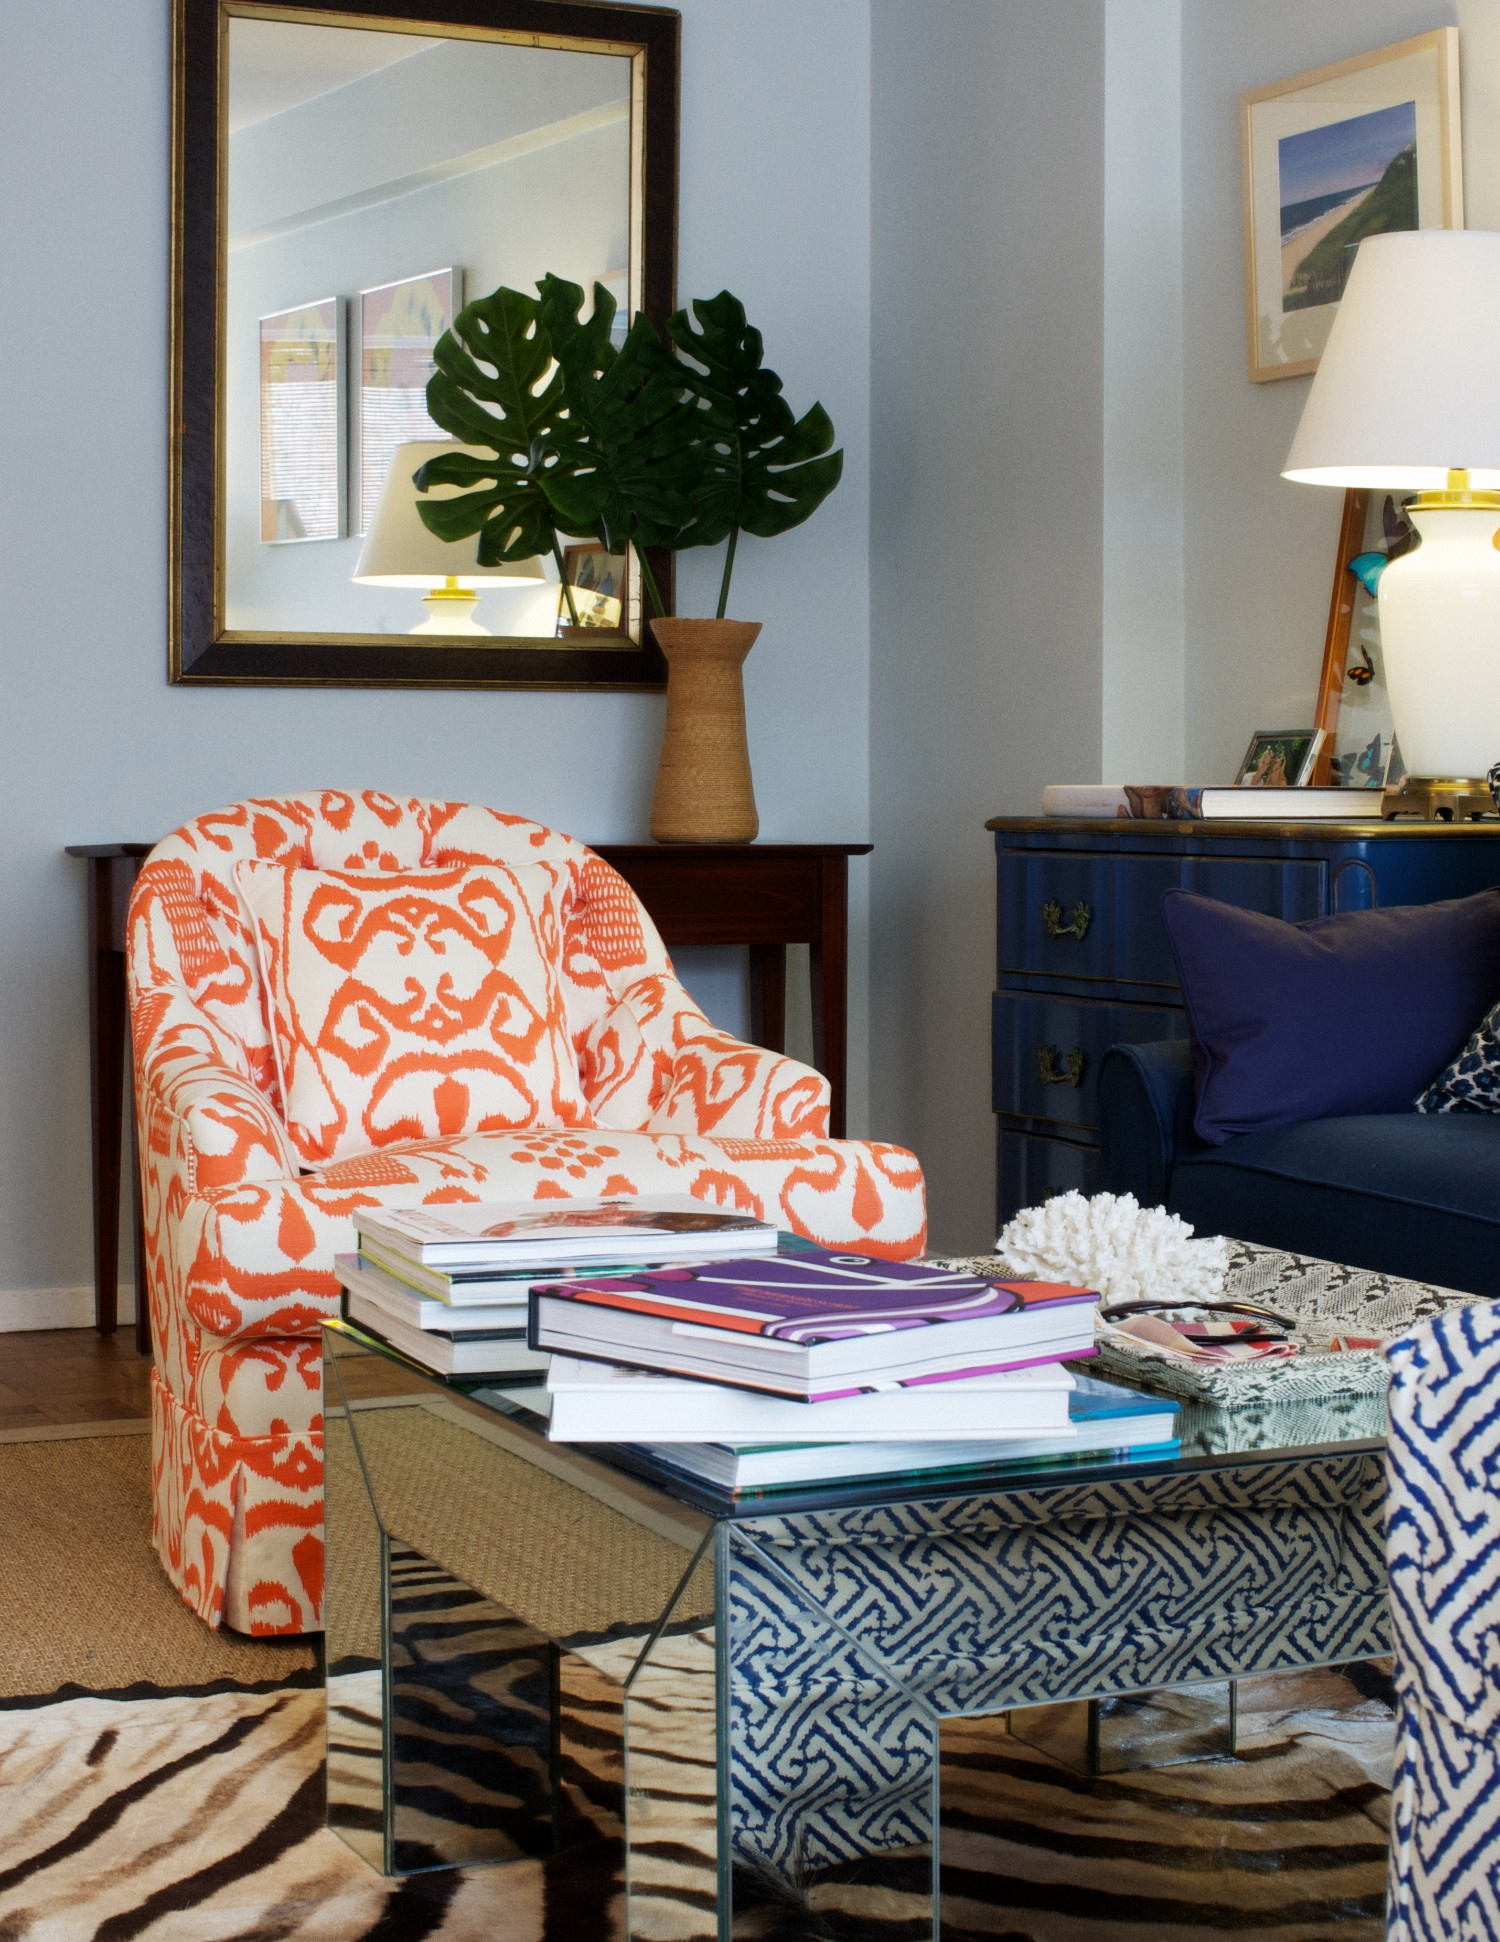 The printed upholstery is all Quadrille fabrics, as well as the wallpaper in the hallway.